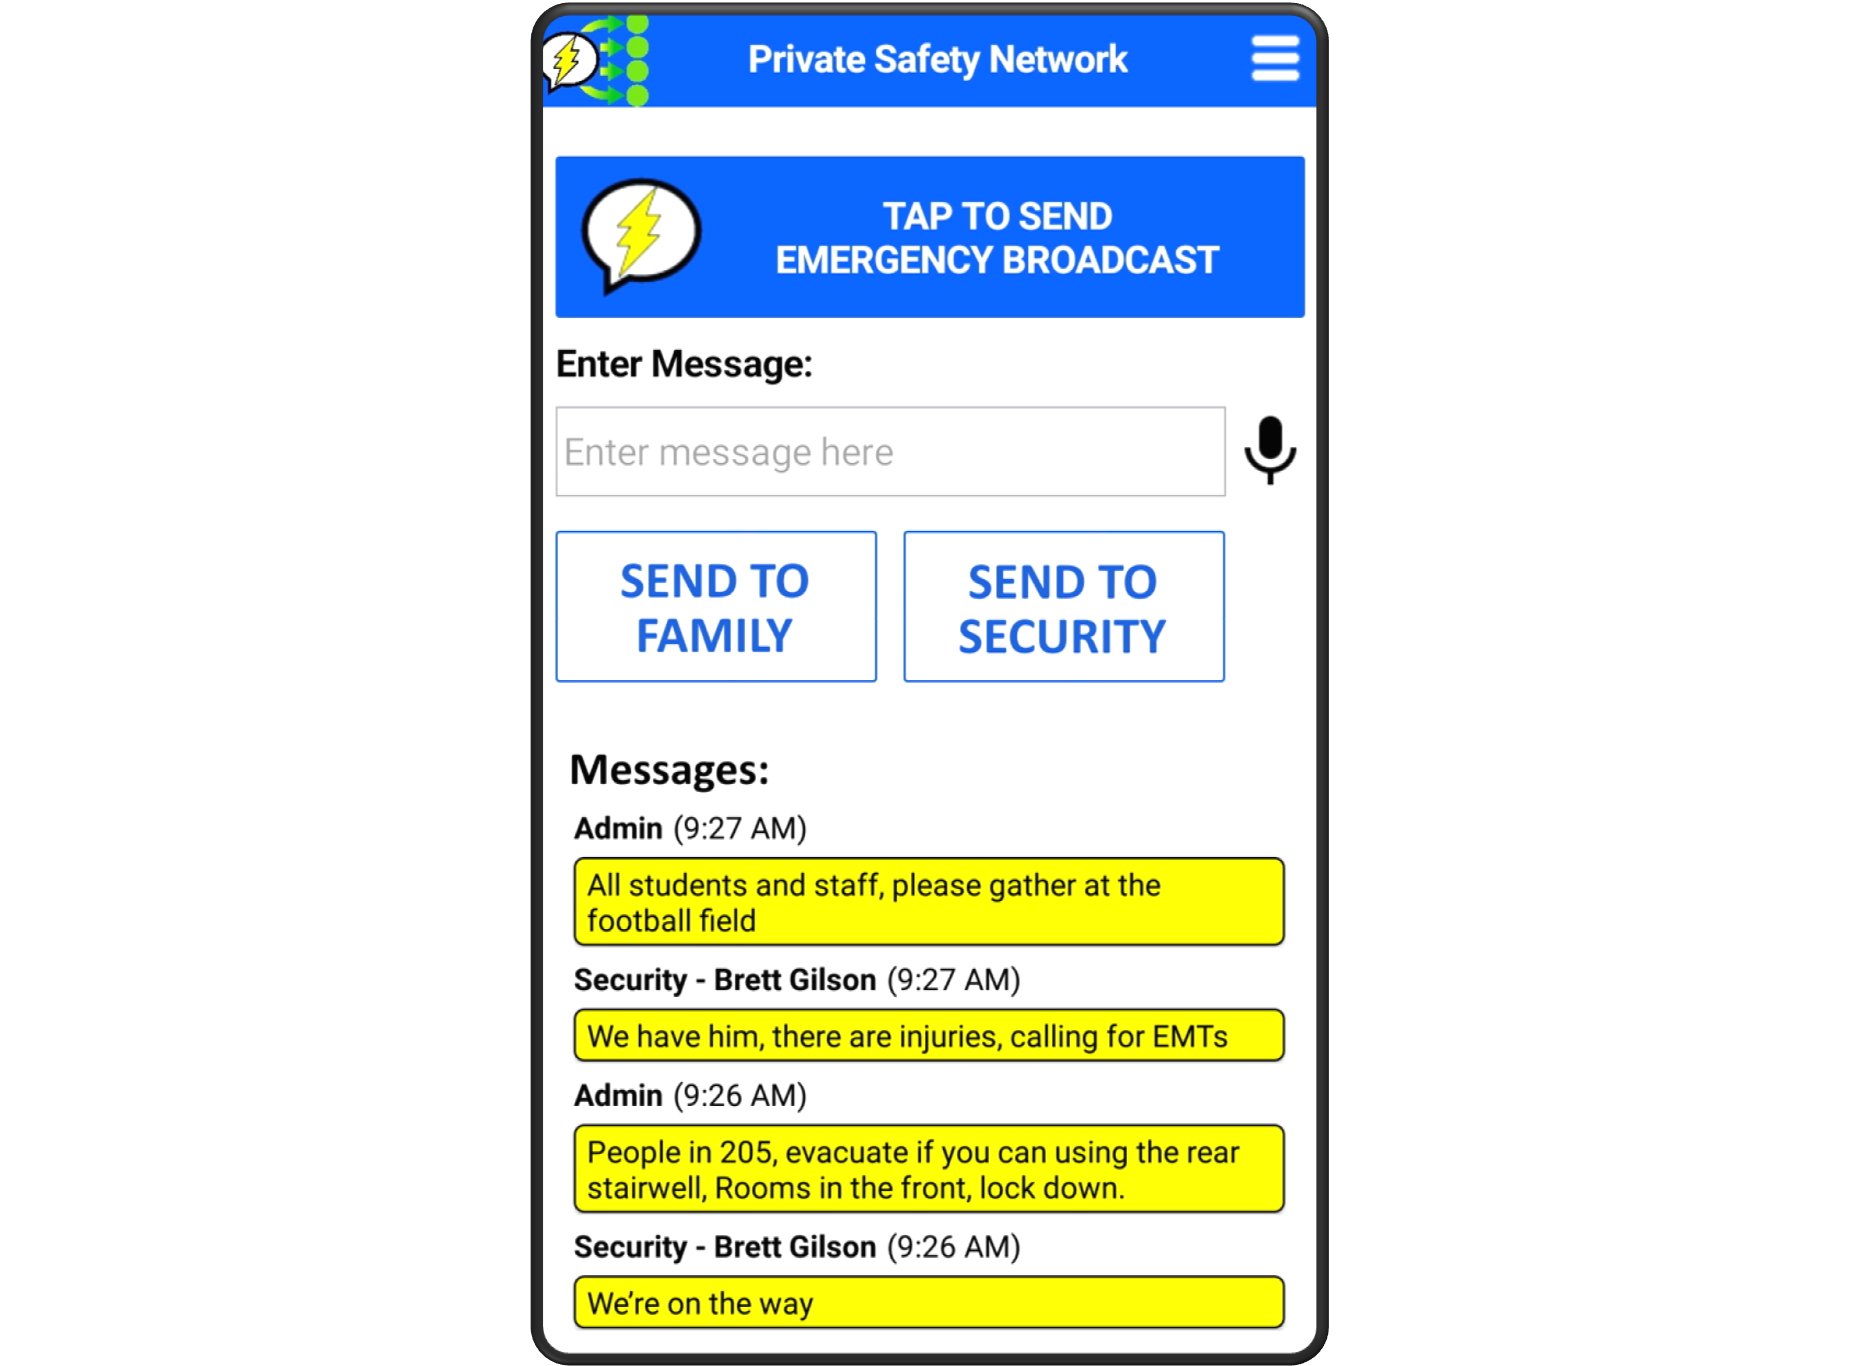 Private Safety Network